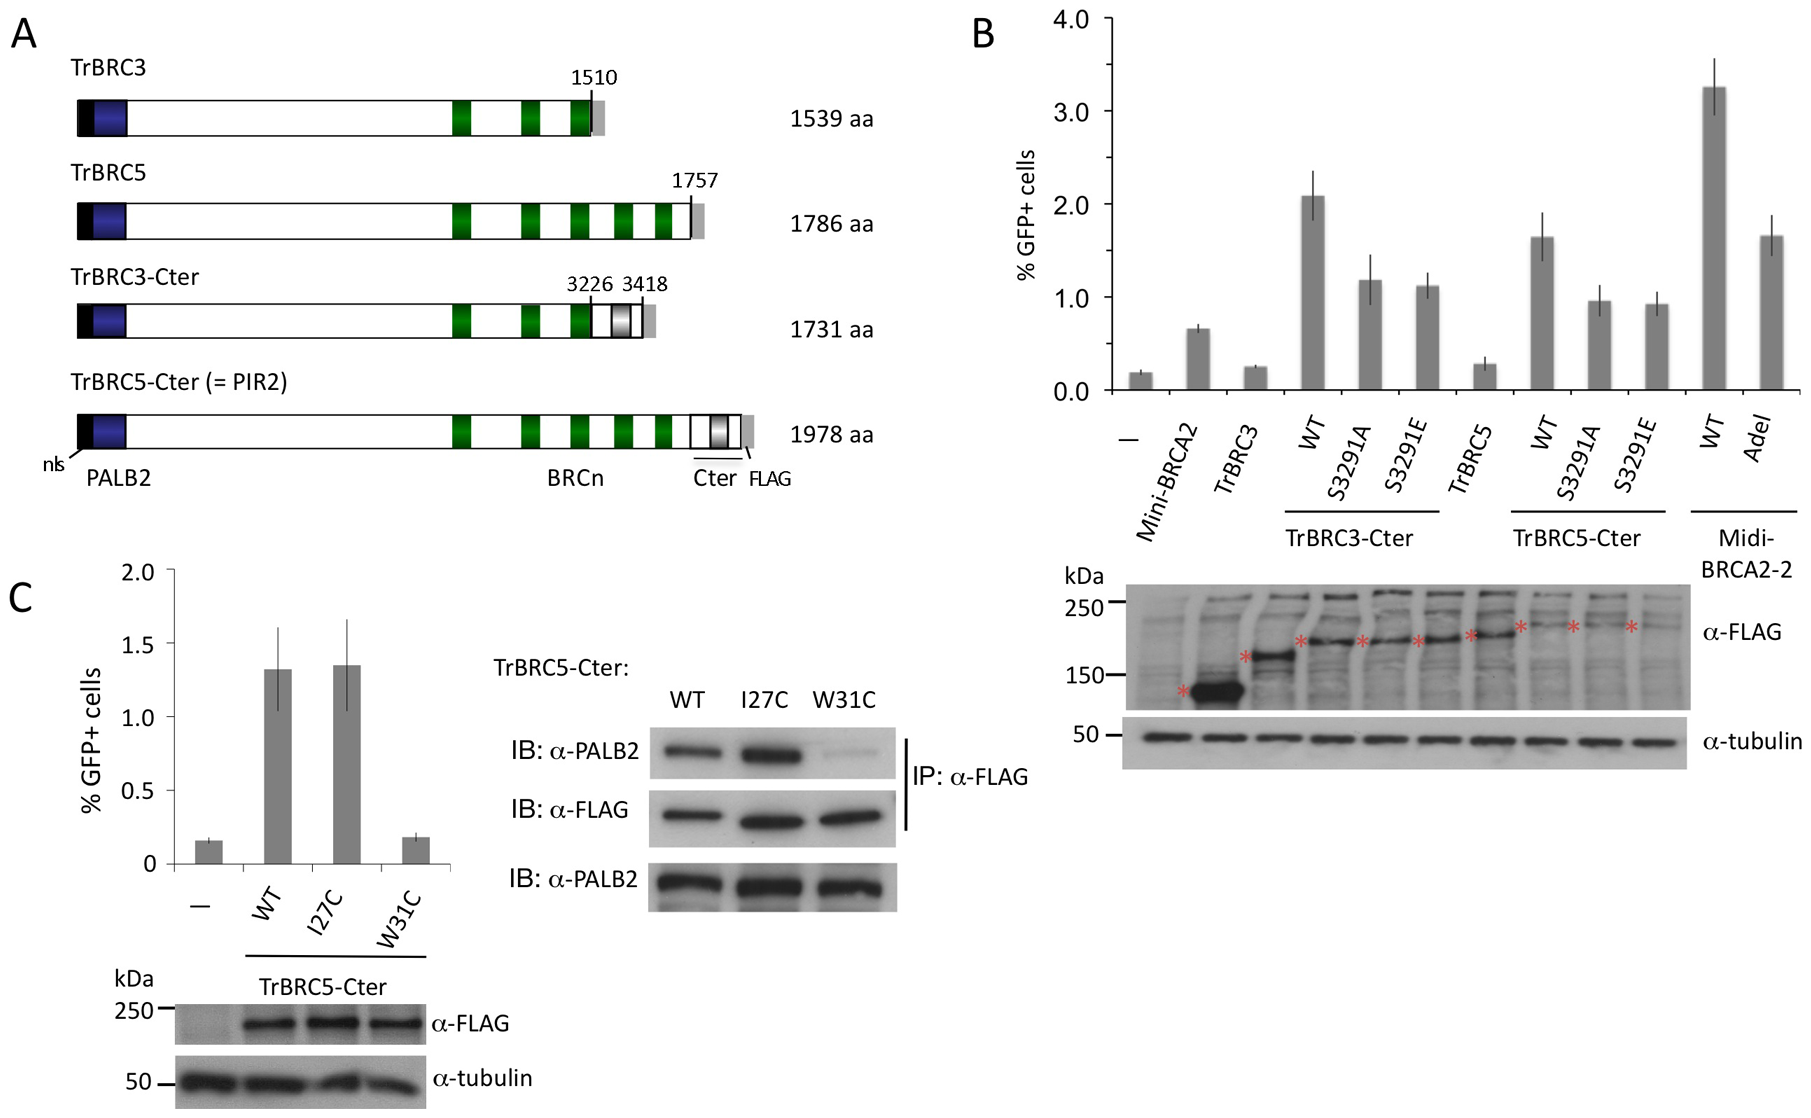 BRCA2 DBD is not required for HR in peptides that bind PALB2.